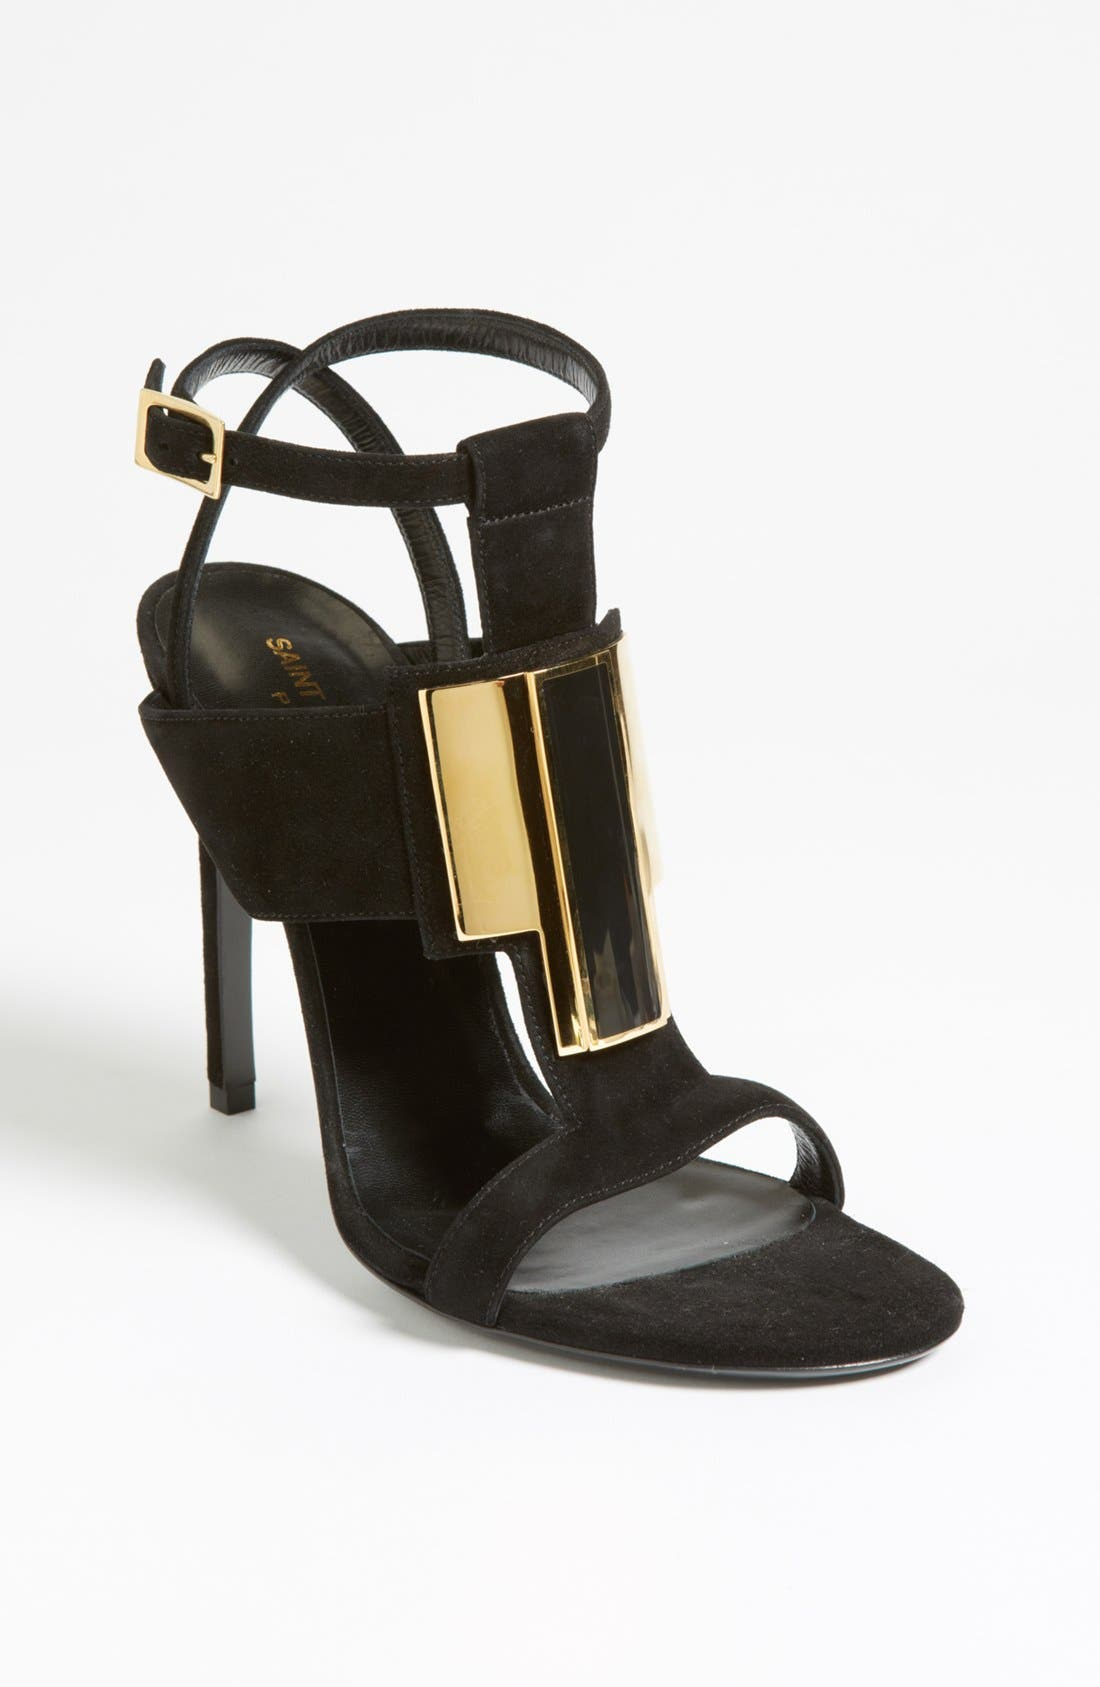 Alternate Image 1 Selected - Saint Laurent 'Janis Metal' Sandal